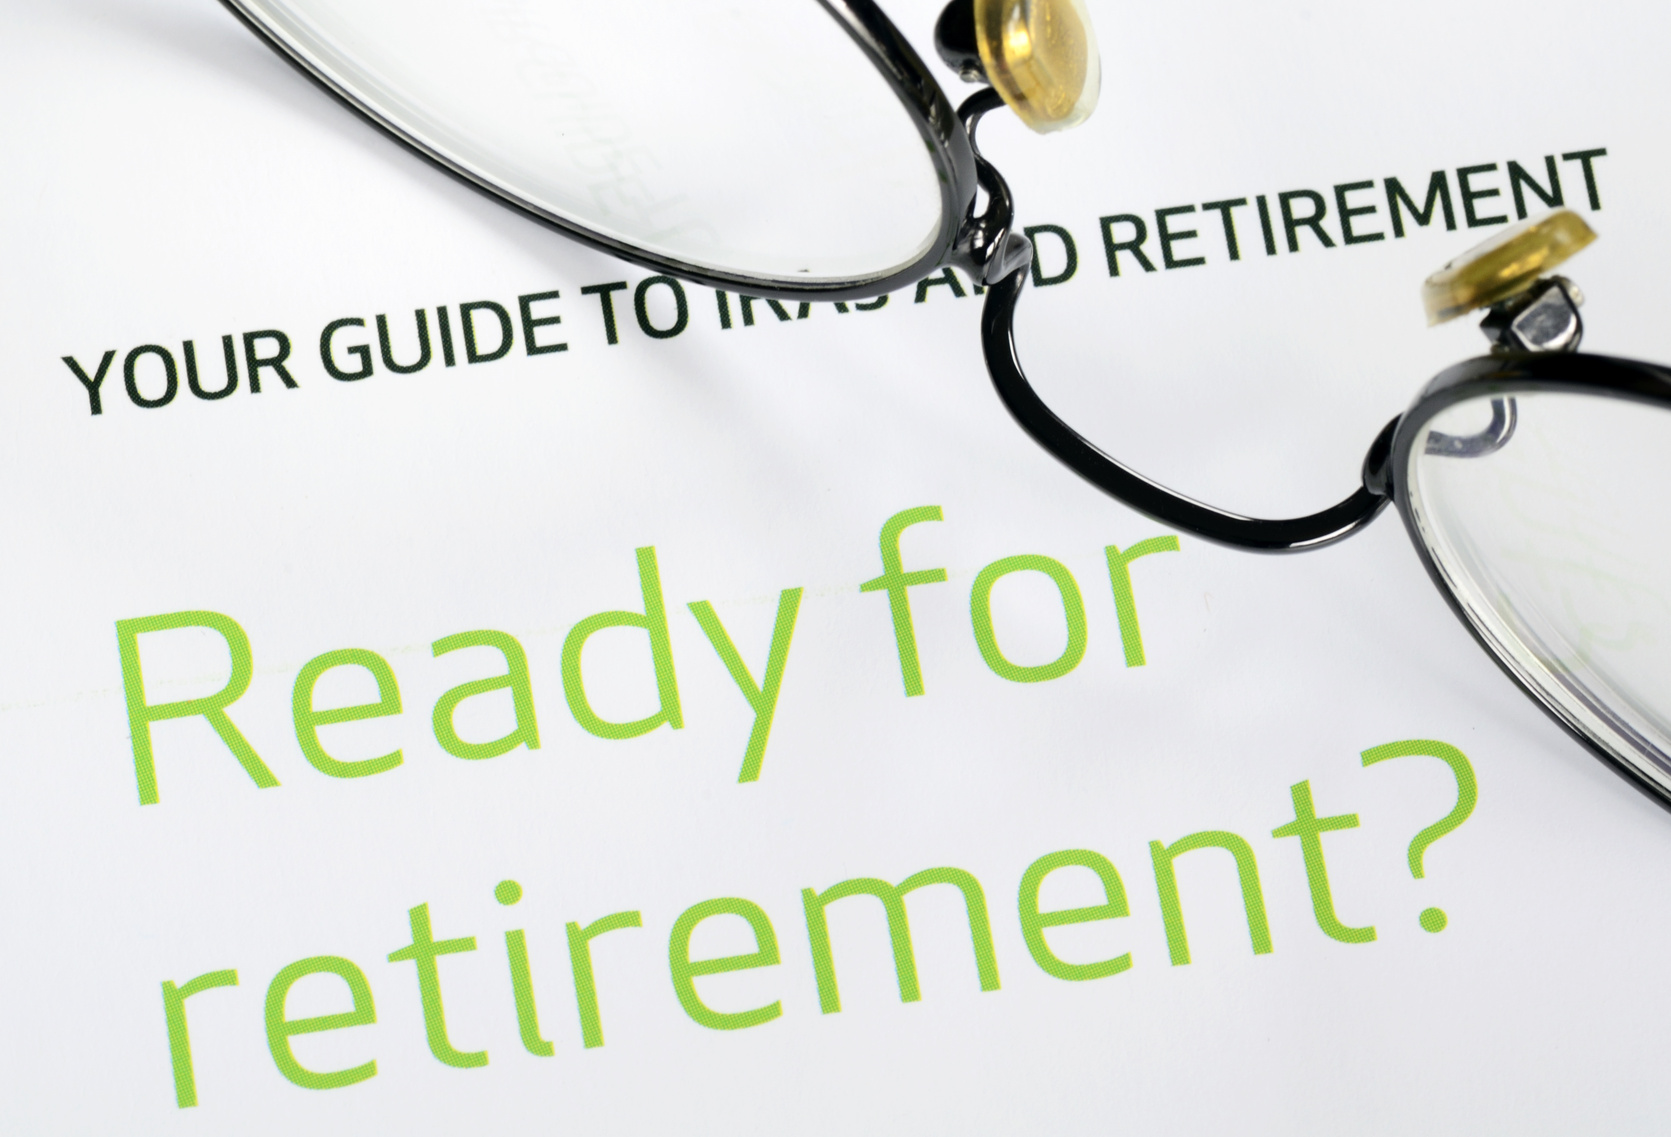 Is early retirement the right choice?